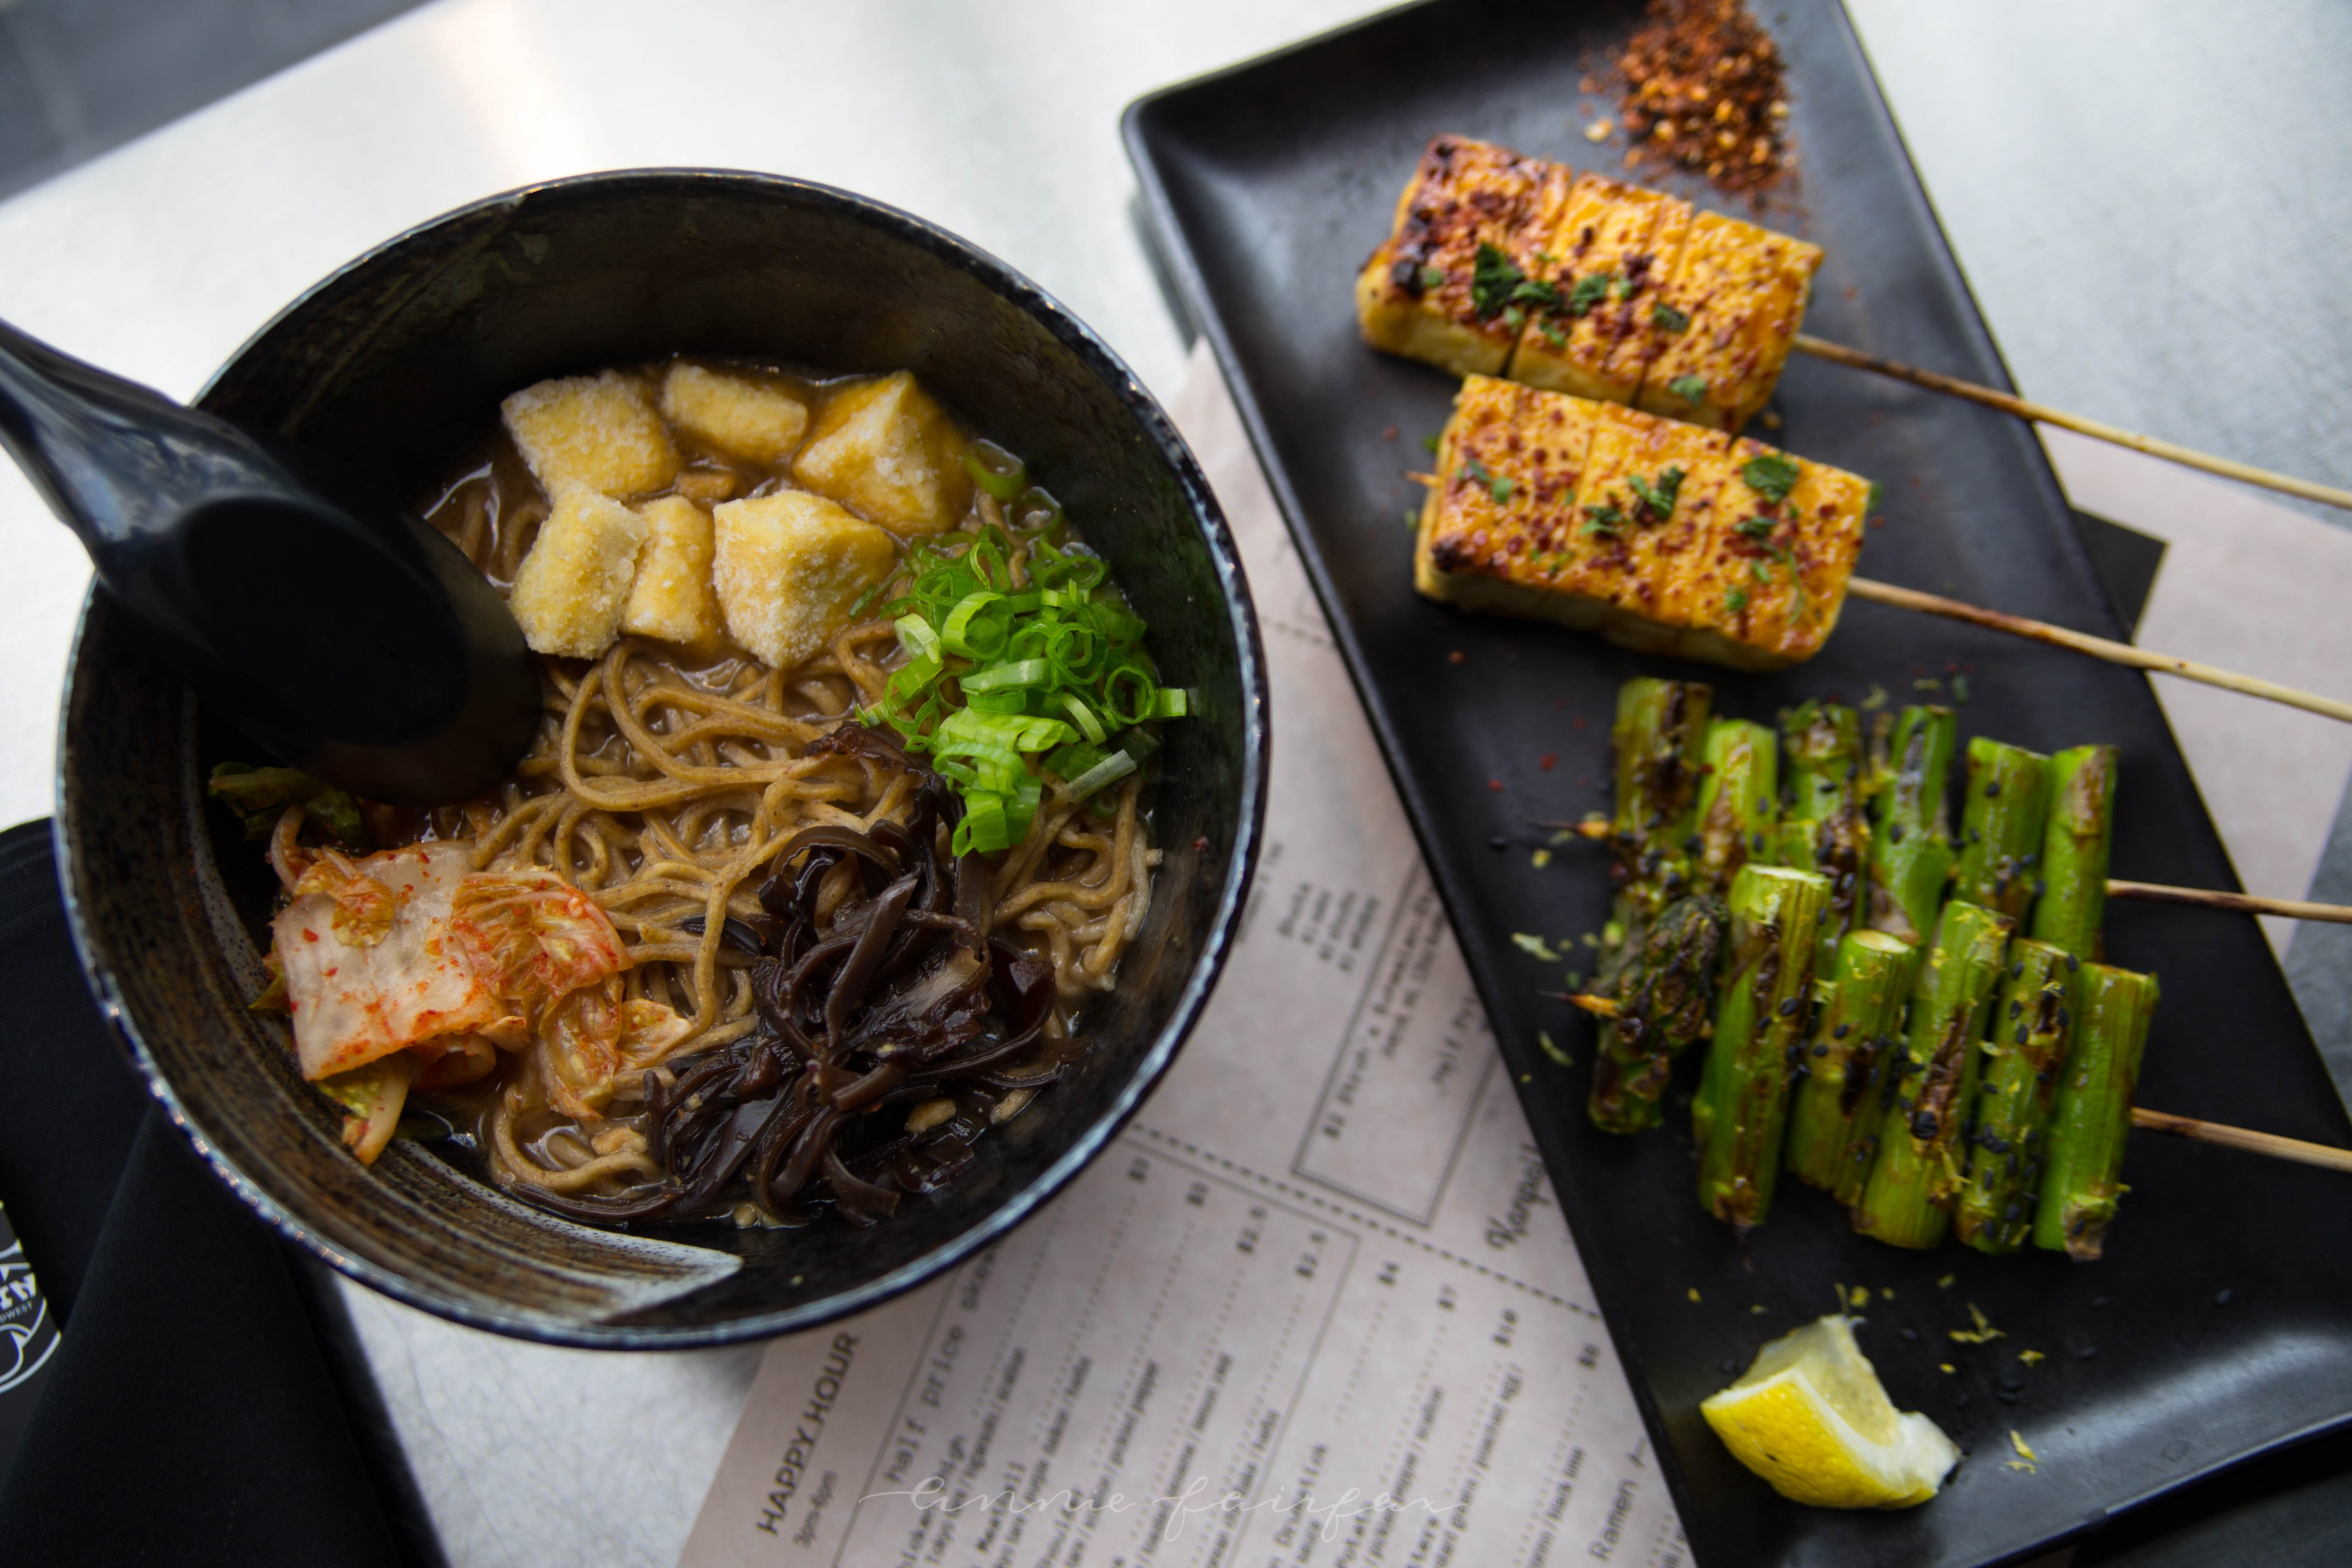 Gaijin Japanese Restaurant The Complete Traveler's Guide to Traverse City, Michigan Where to Eat, What to Do, and Where to Stay